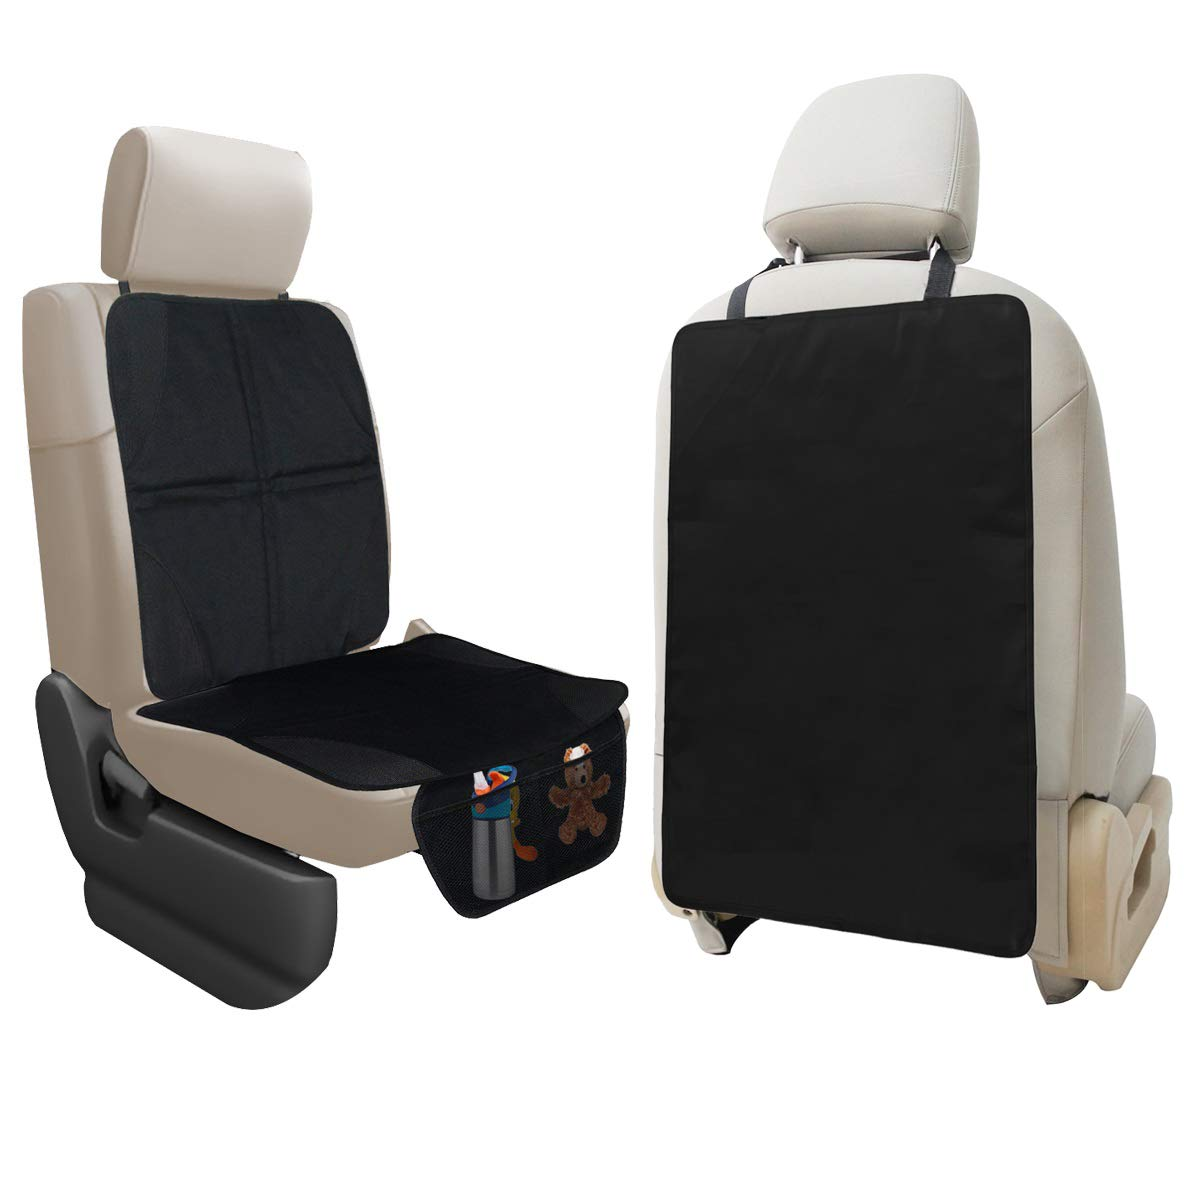 Lebogner Car Seat Protector + X-Large Kick Mat Auto Seat Back Protector, Durable Seat Liner & Cover + Waterproof Back Seat Kick Guard Seat Saver To Protect Your Leather And Upholstery Seat From Damage by lebogner